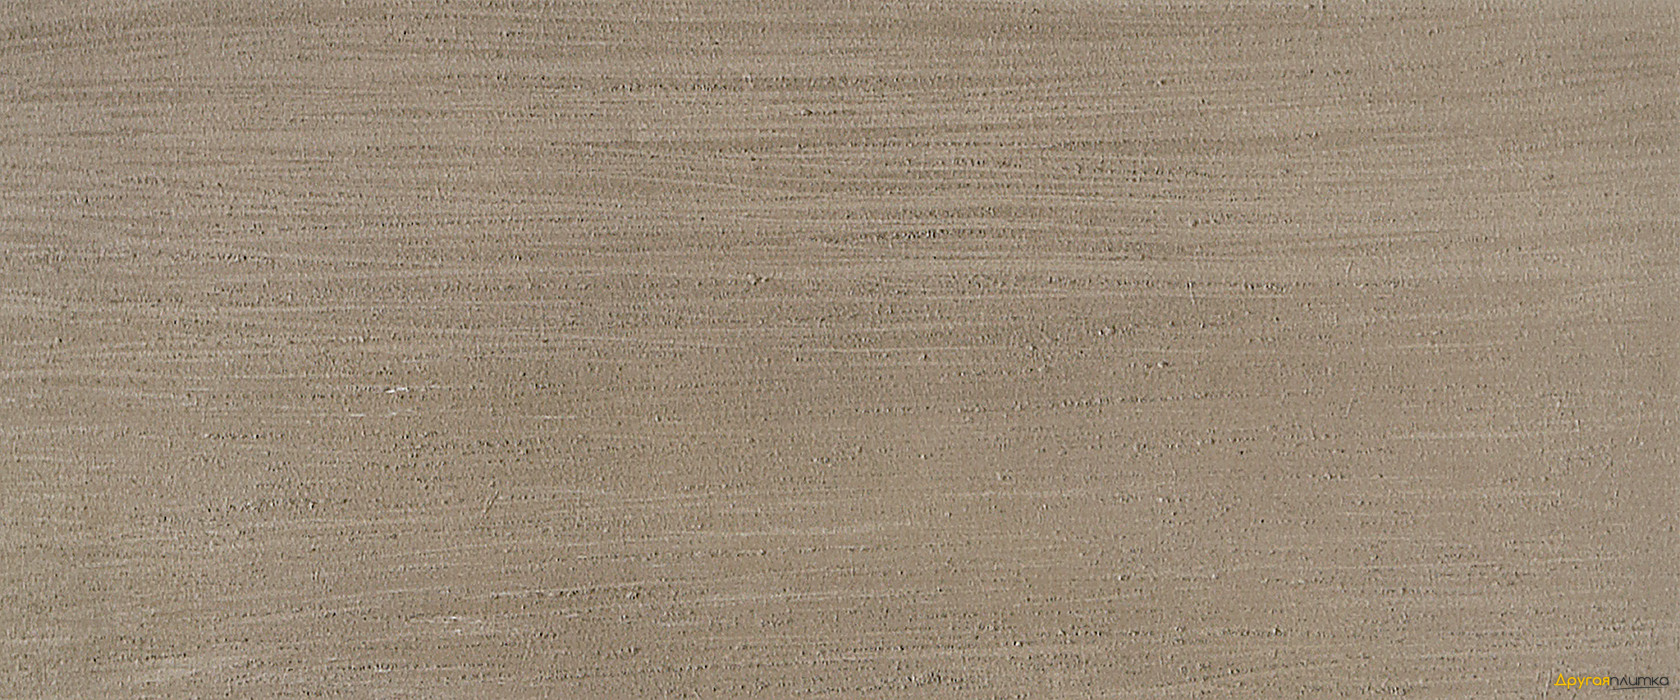 Garden Rose beige wall 02